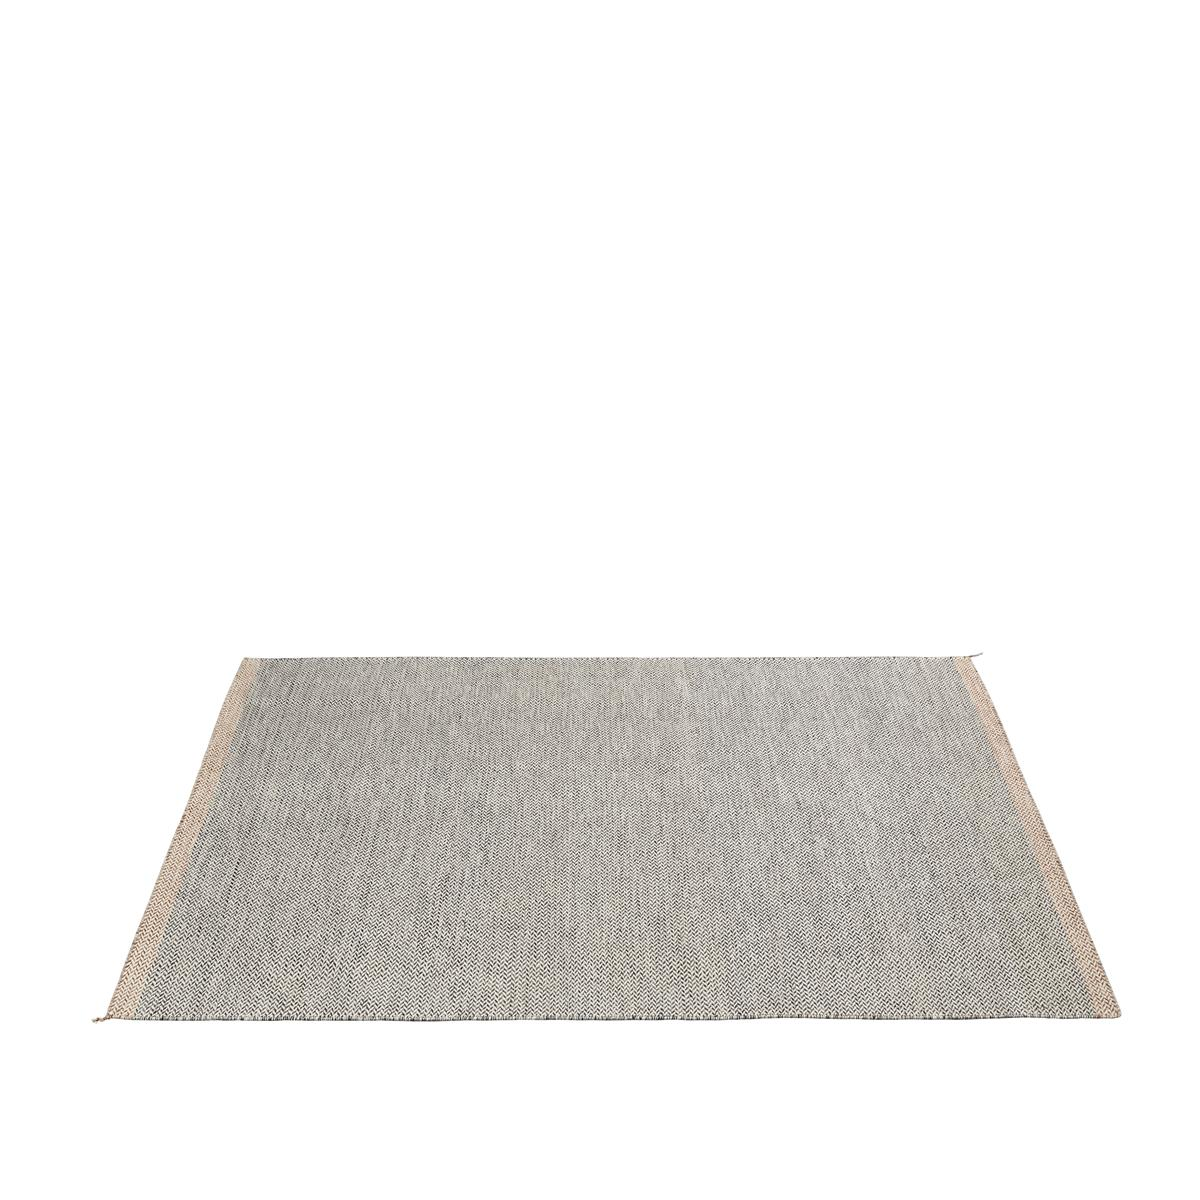 Ply Rug i 200 X 300 cm, Black-White